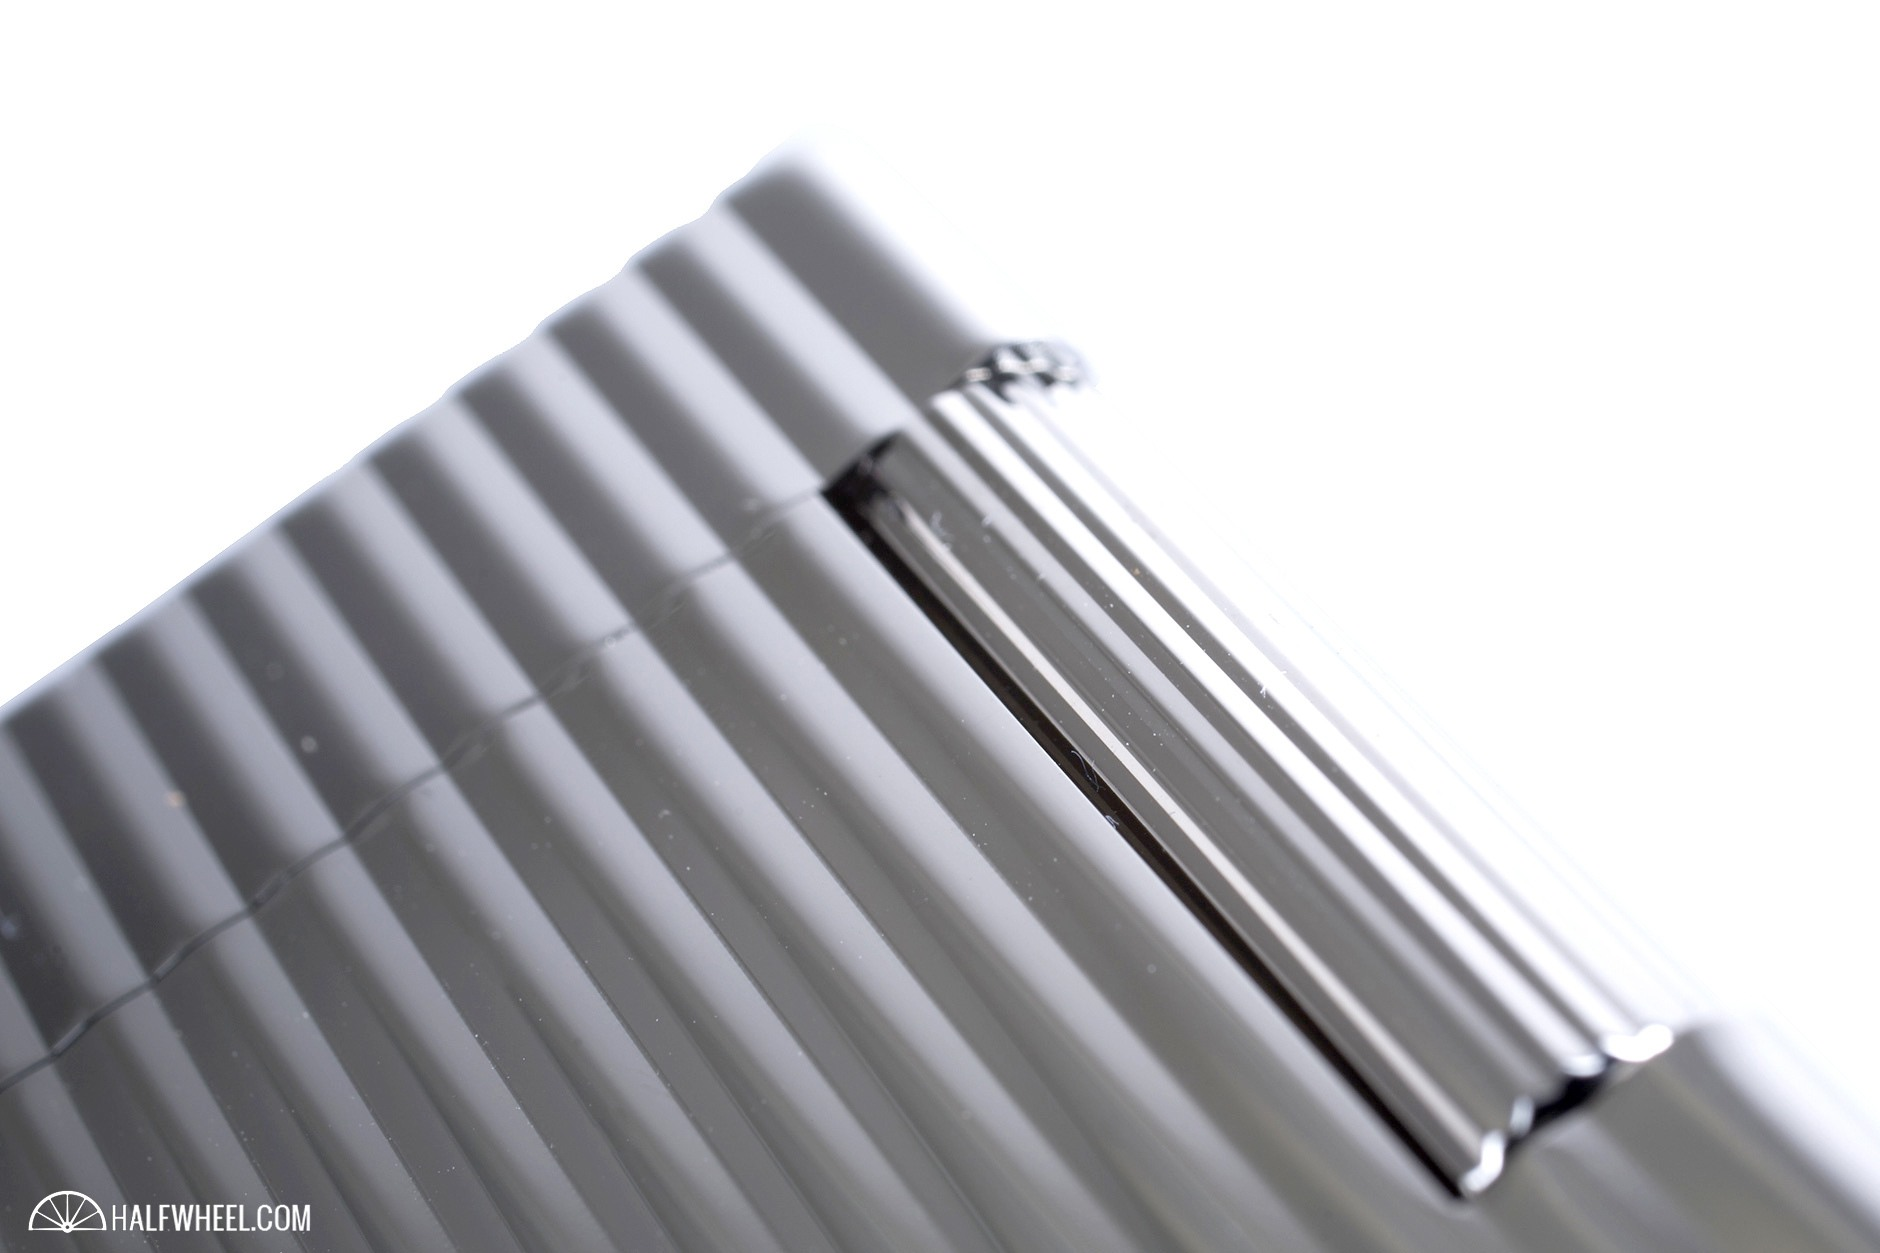 S.T. Dupont Initial Lighter profile